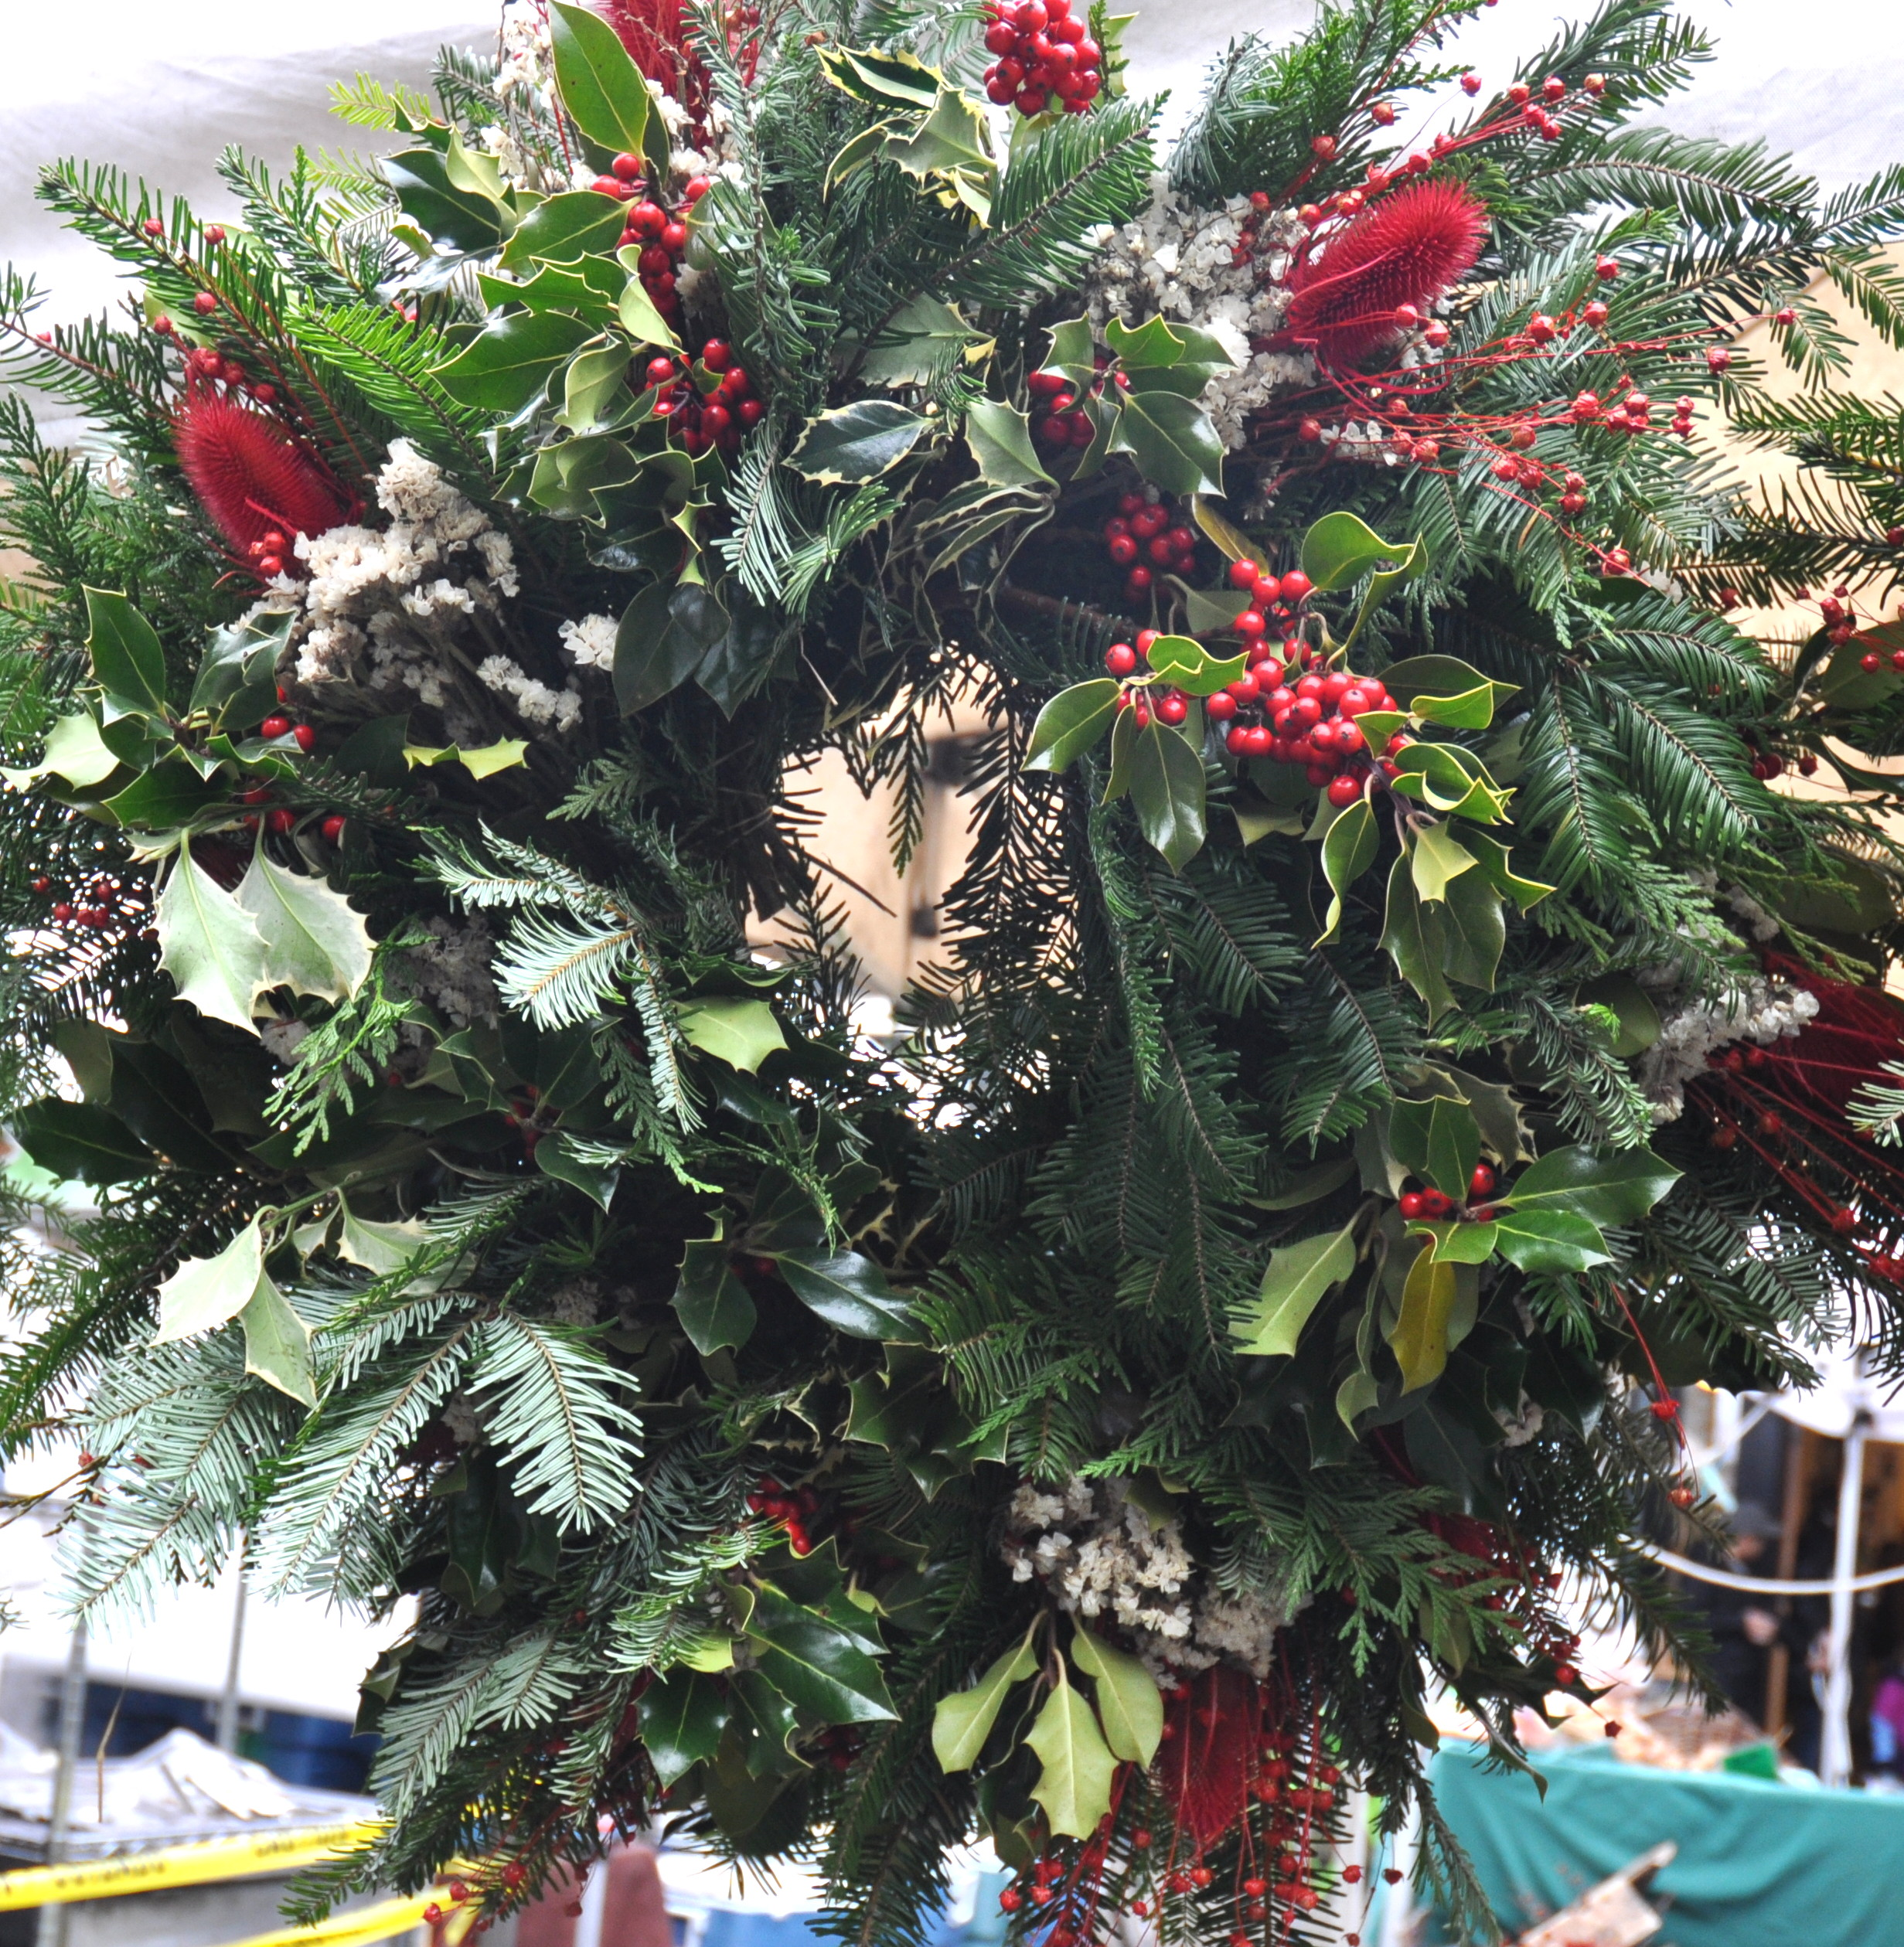 Holiday wreath from Children's Garden at Ballard Farmers Market. Copyright Zachary D. Lyons.